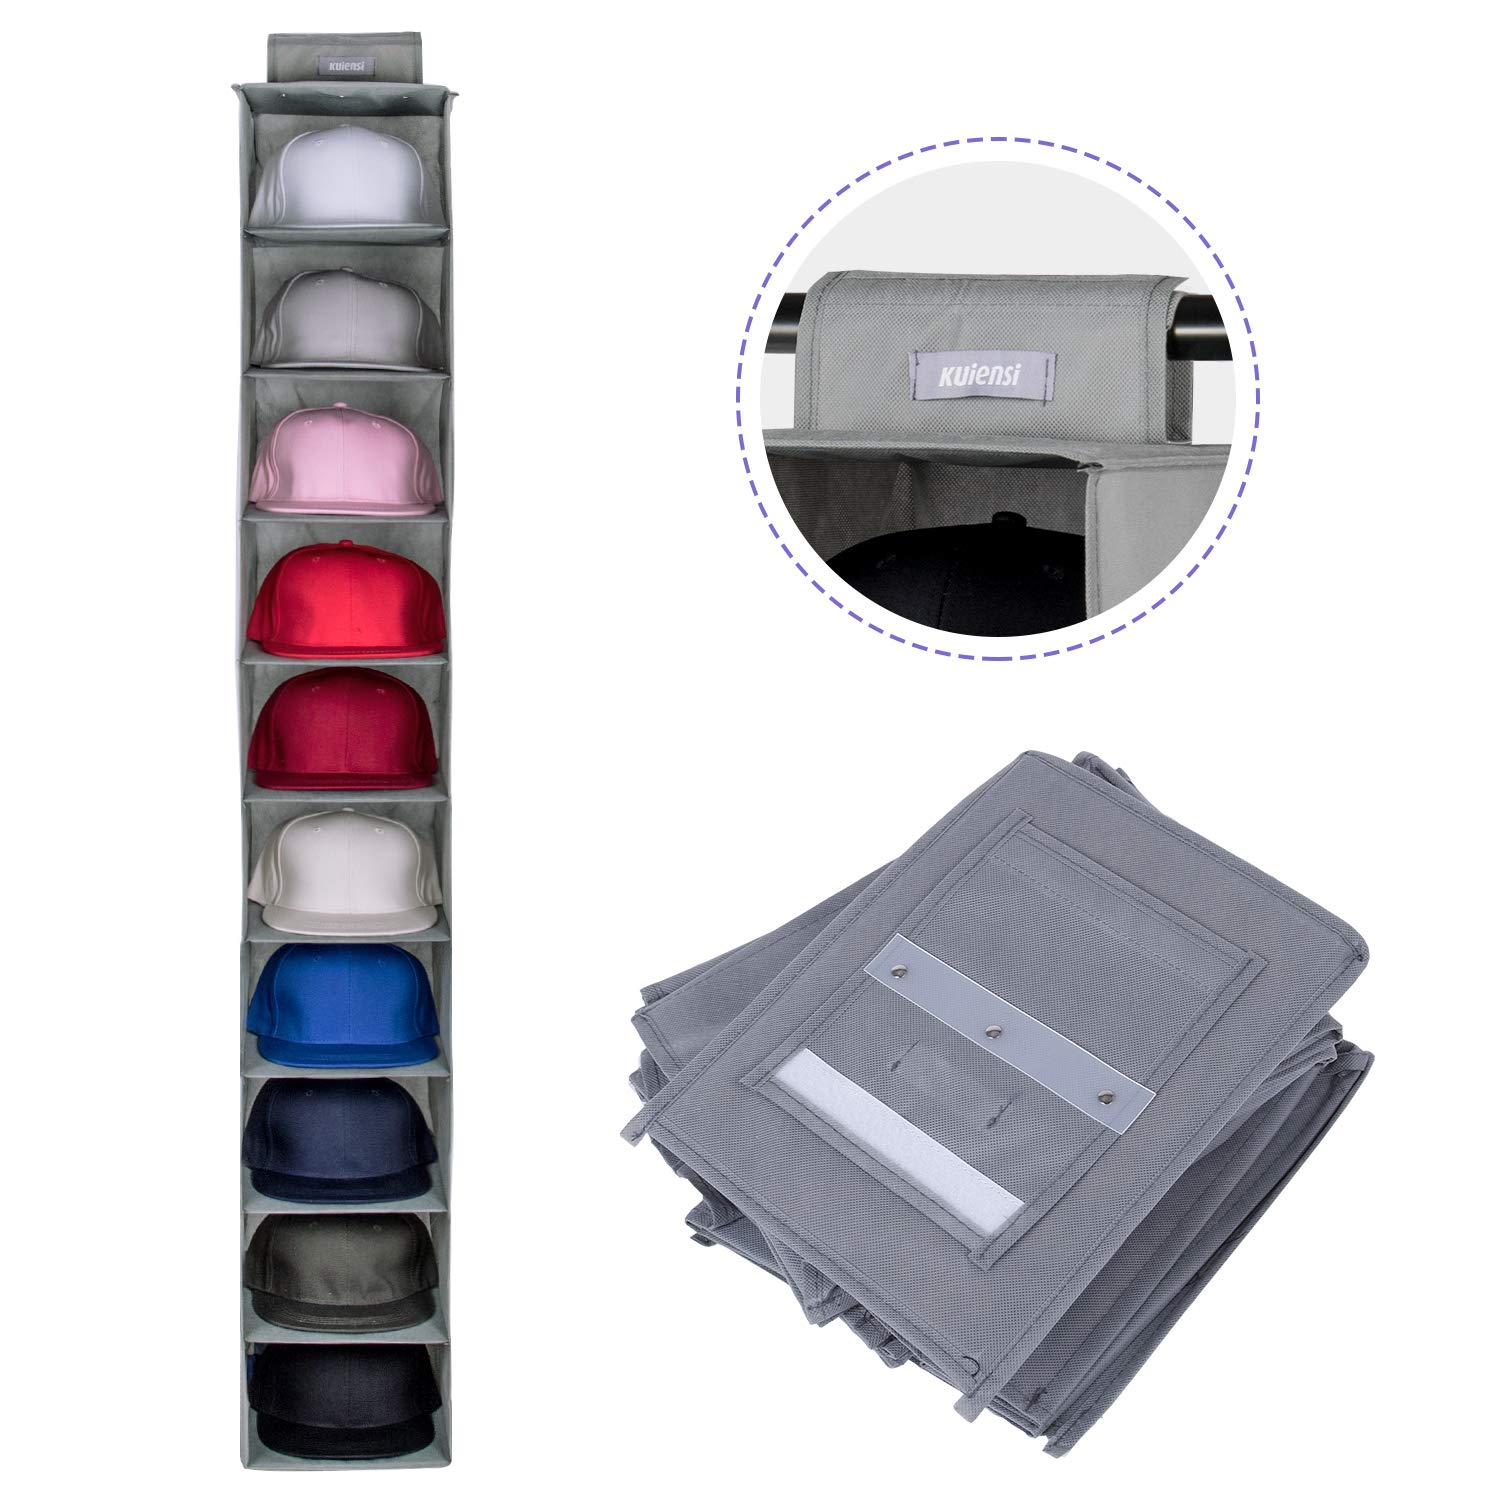 KUIENSI Hat Storage Racks Organizer, 10 Shelf Hanging Closet Holder for Baseball Caps, Using a Monolithic PP Plate Sheet and Fit Protect Your Hats and Keep its Shape